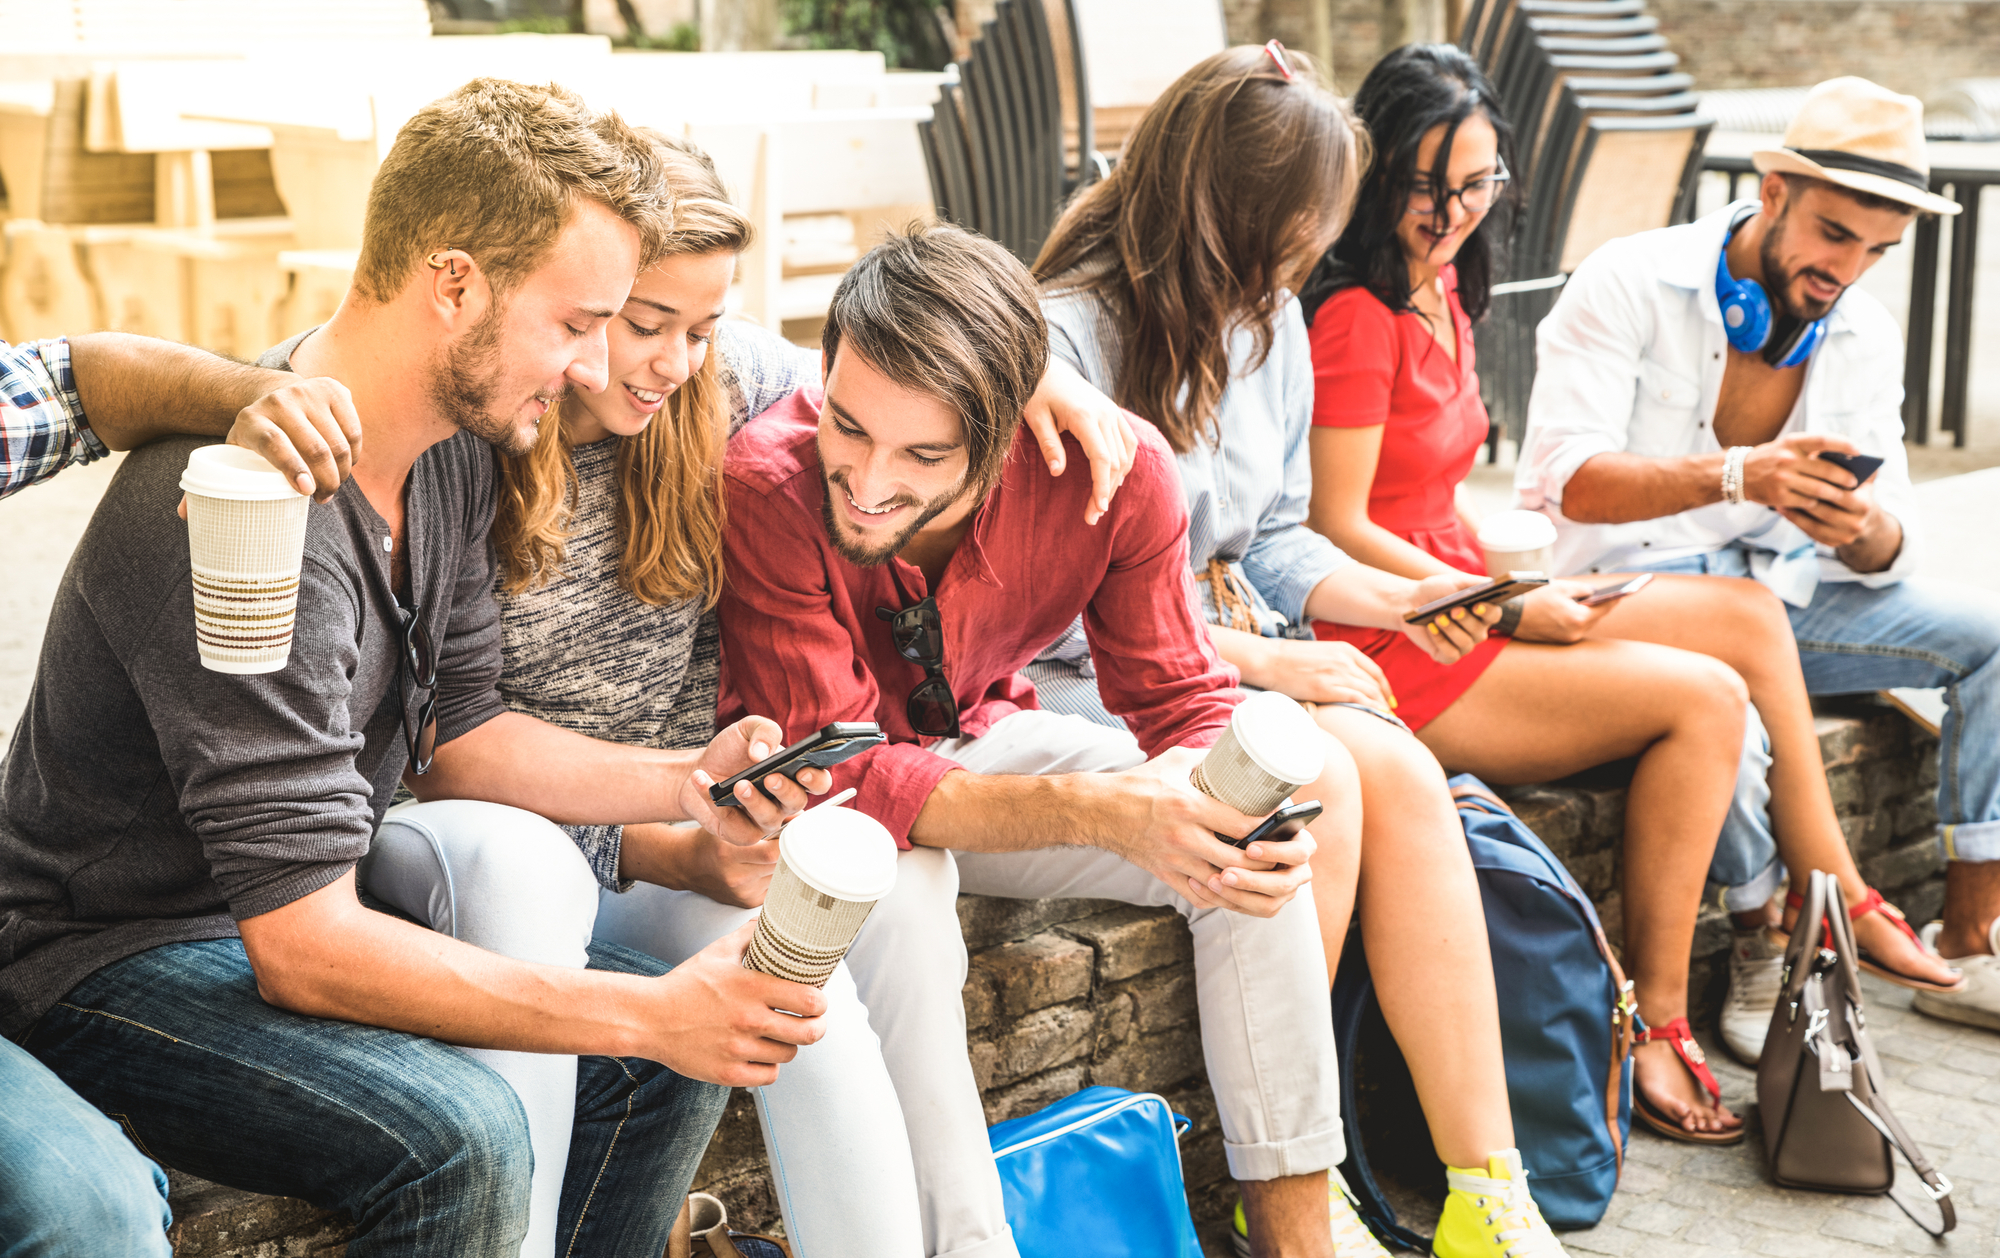 Multiracial millennials group using smart phone at city college backyard - Young people addicted by mobile smartphone - Technology concept with connected trendy friends - Warm vibranc